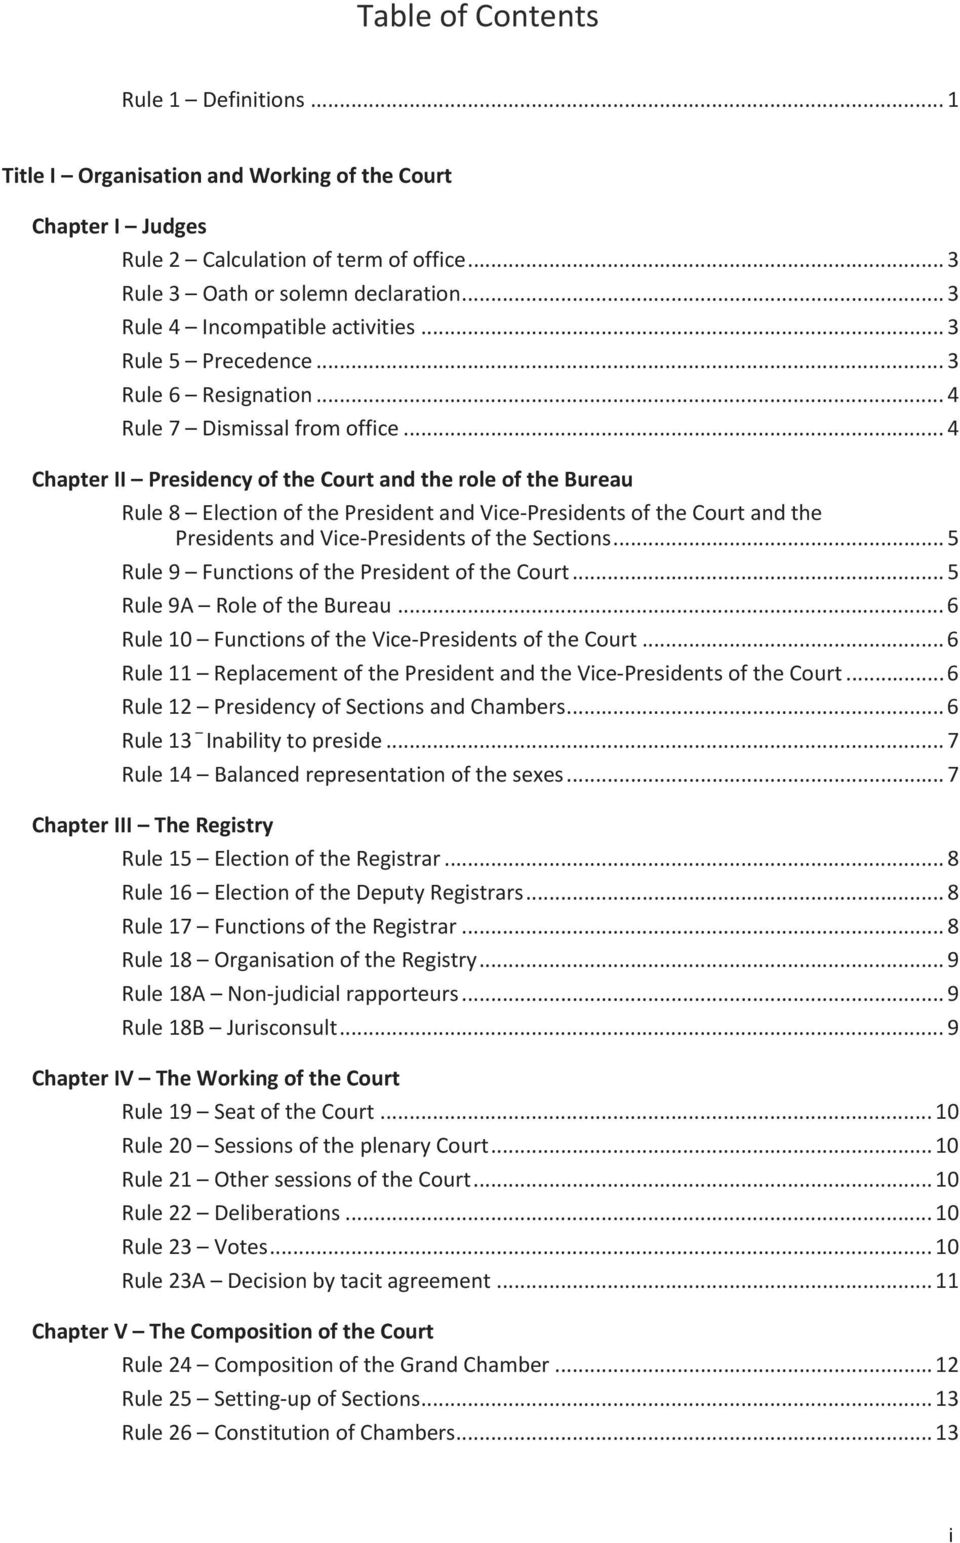 .. 4 Chapter II Presidency of the Court and the role of the Bureau Rule 8 Election of the President and Vice-Presidents of the Court and the Presidents and Vice-Presidents of the Sections.